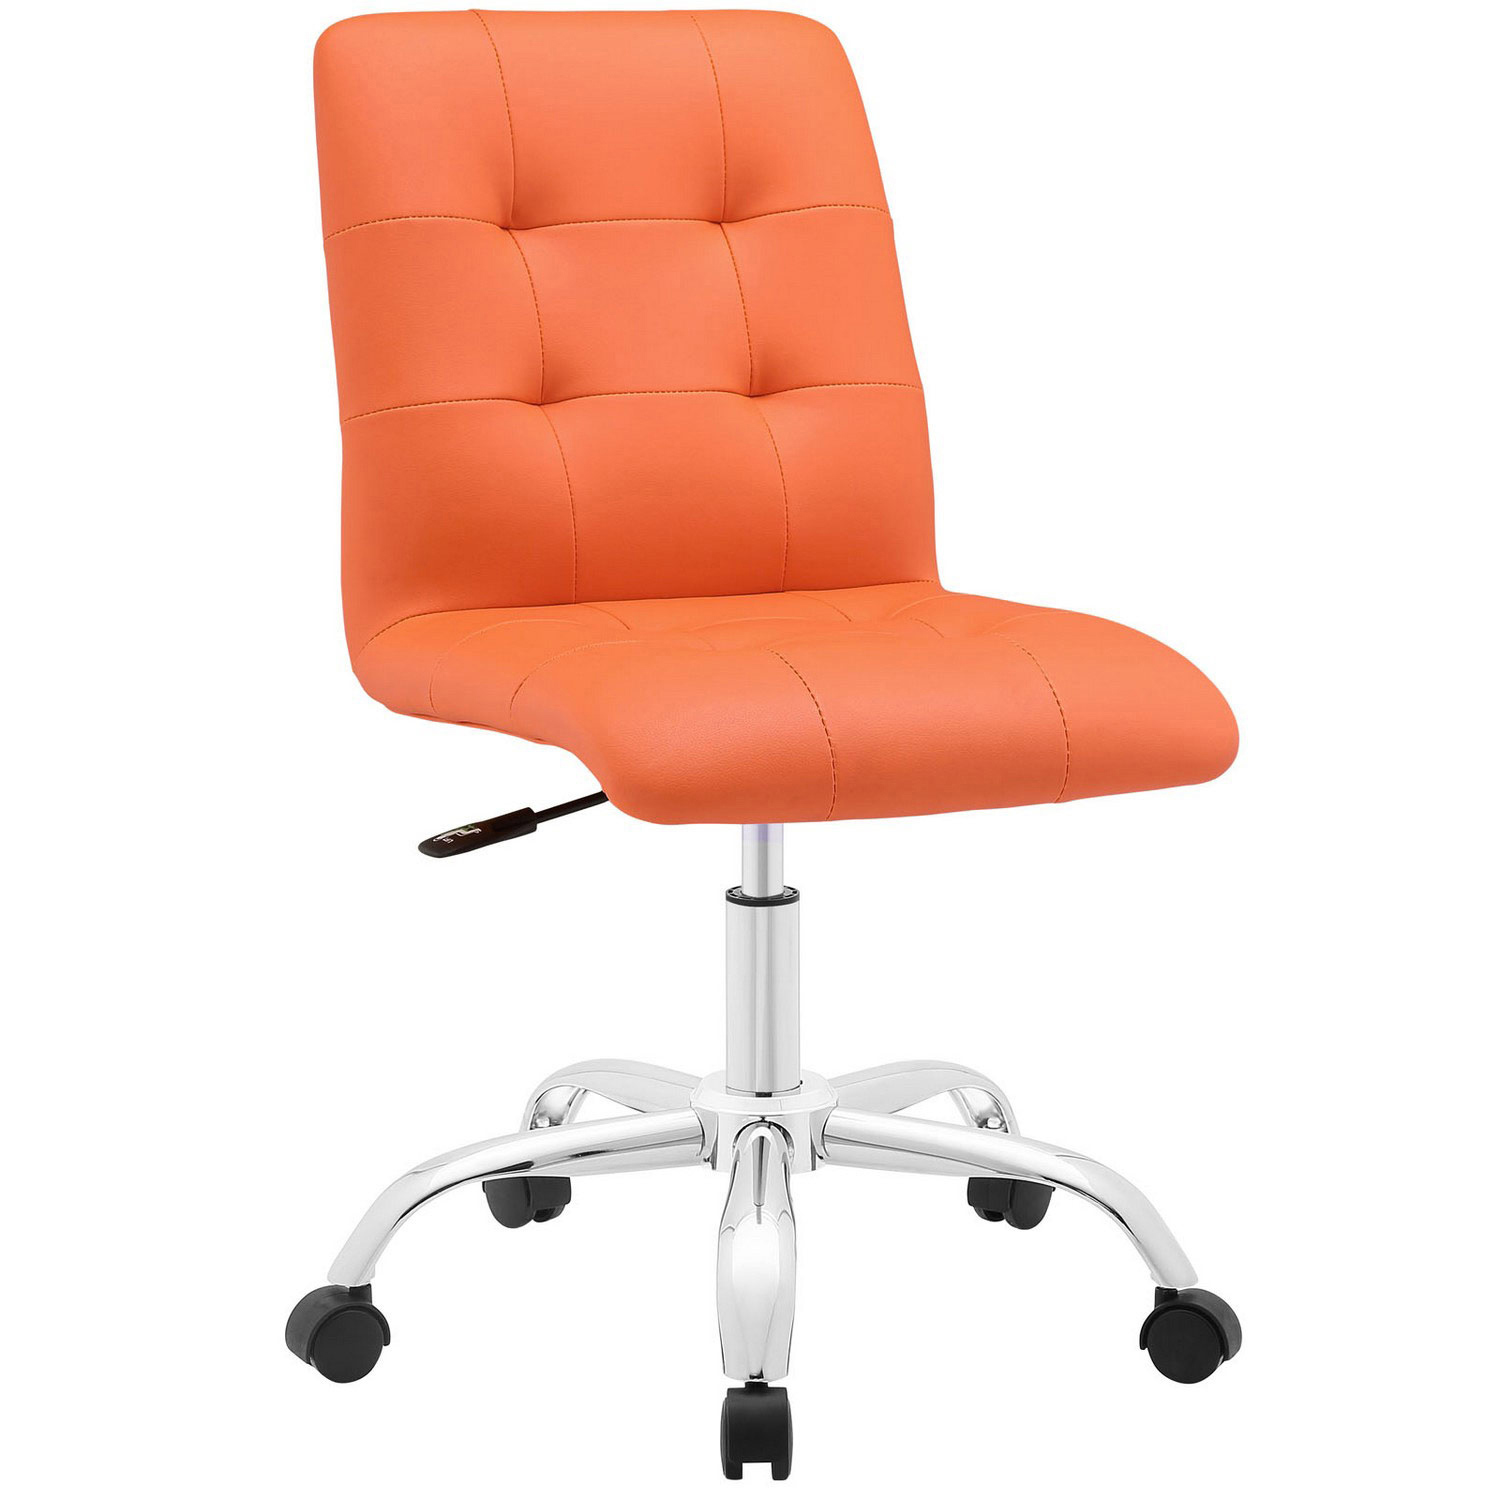 Modway Prim Armless Mid Back Office Chair - Orange